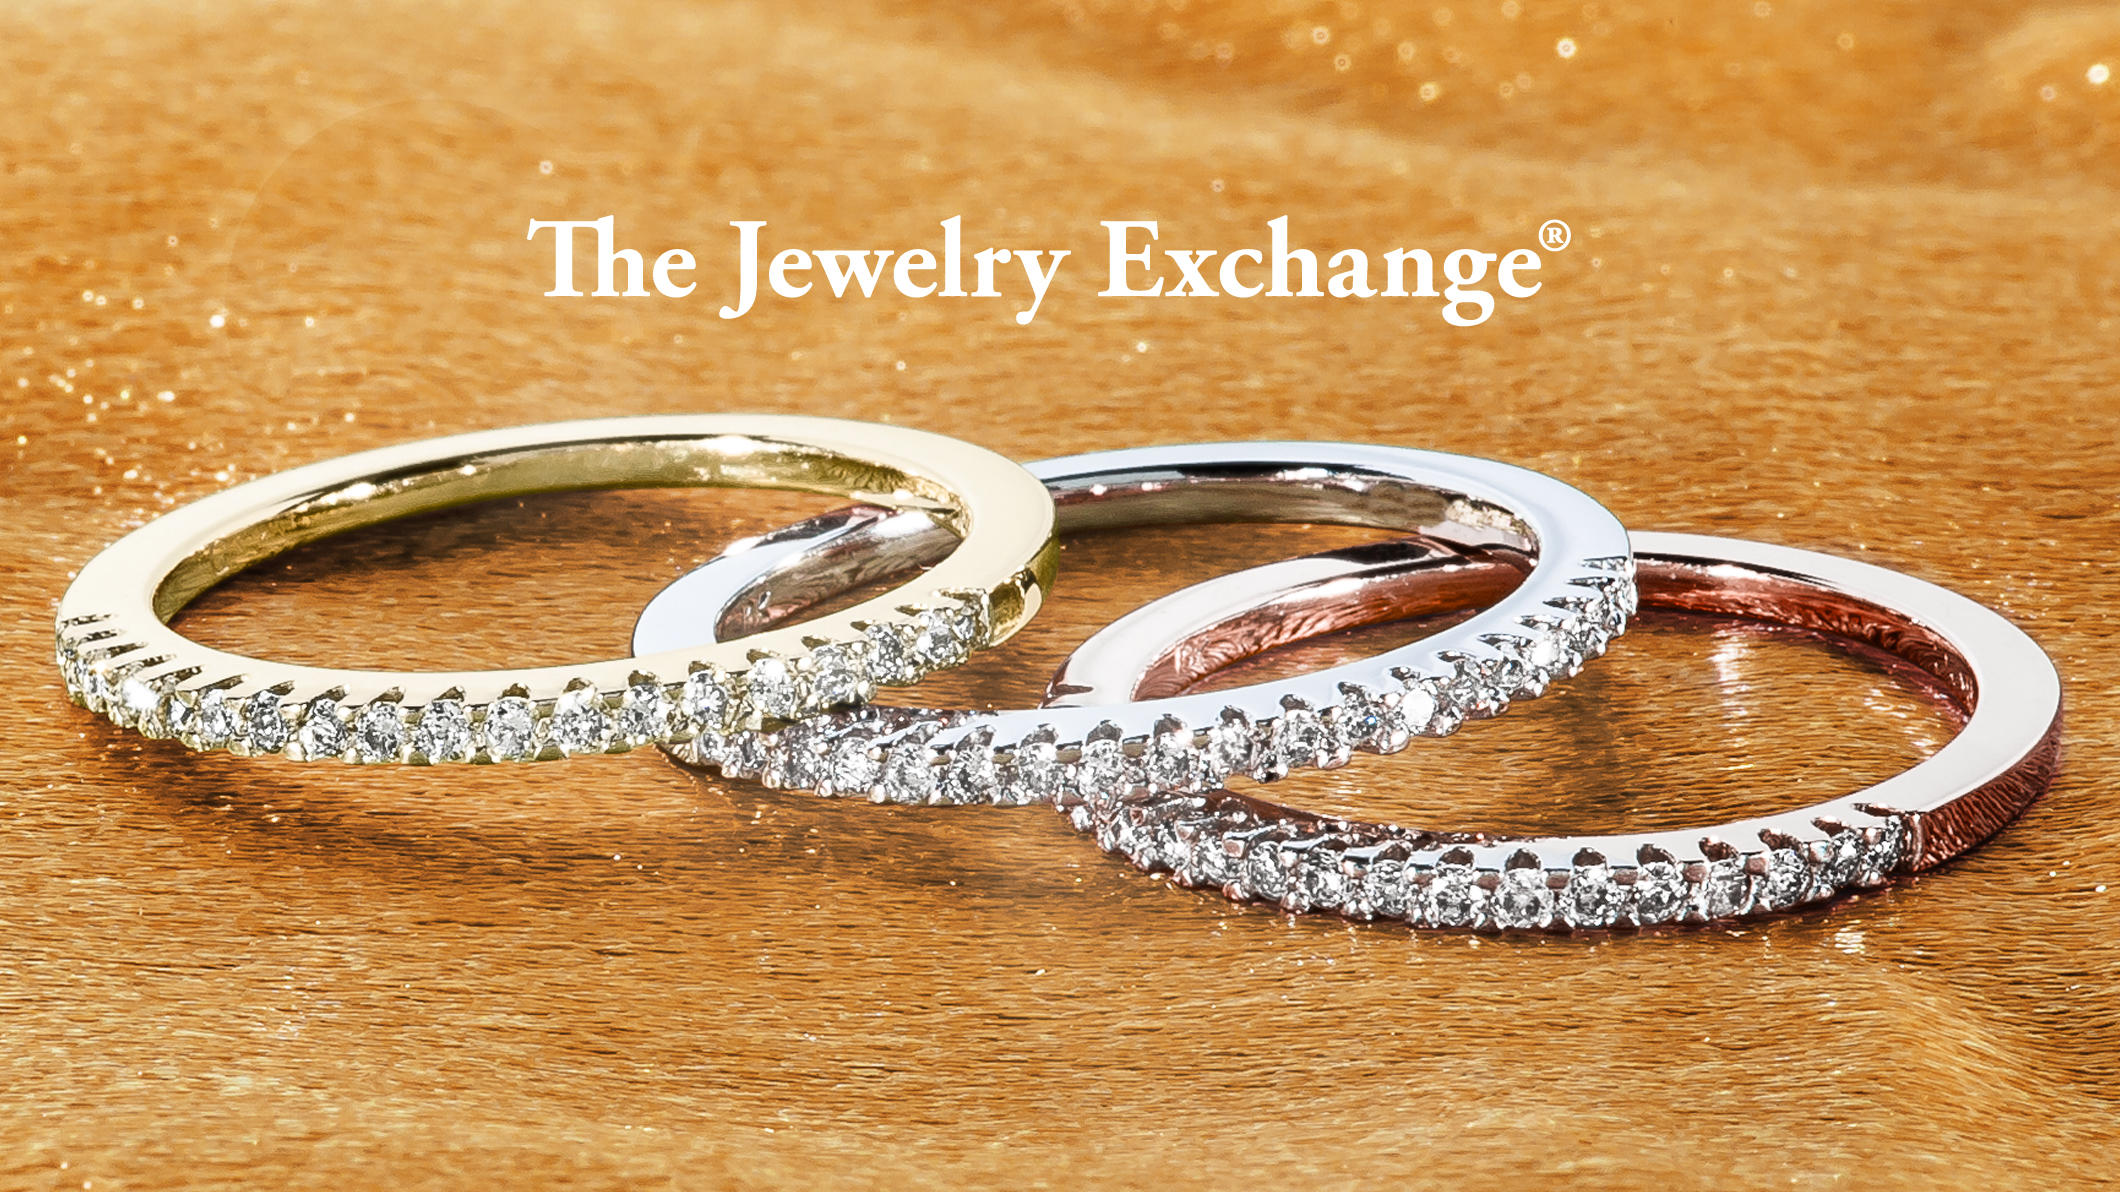 1 visit bluenile com diamond com and jewelryexchange com compare the sites comment on the similariti We used diamond exchange but it's changed hands and i can't comment on blue nile possible and then e-mail blue nile customer service (service@bluenile.